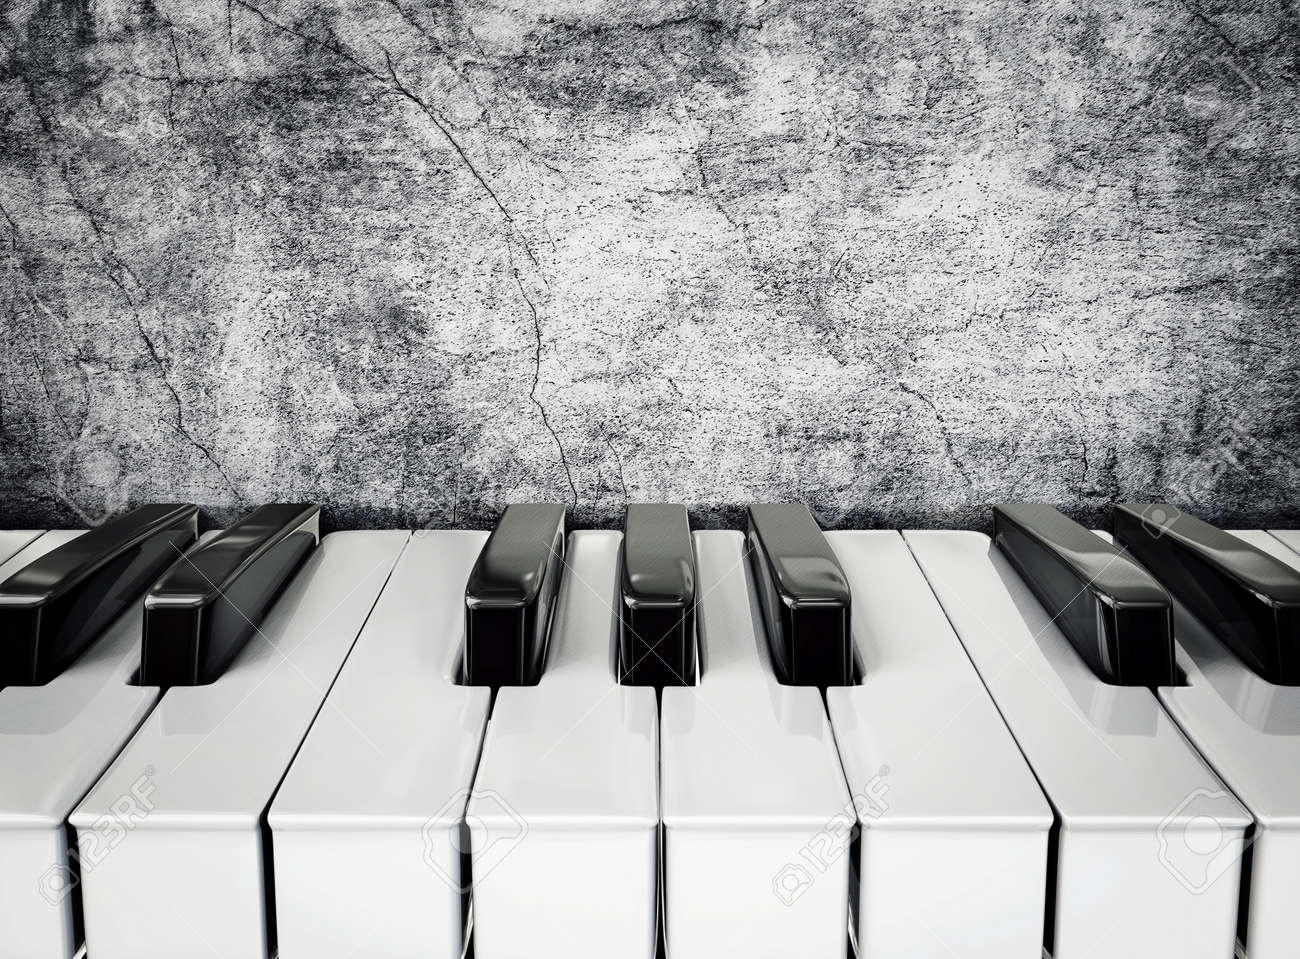 Piano Without Black Keys Black And White Piano Keys on